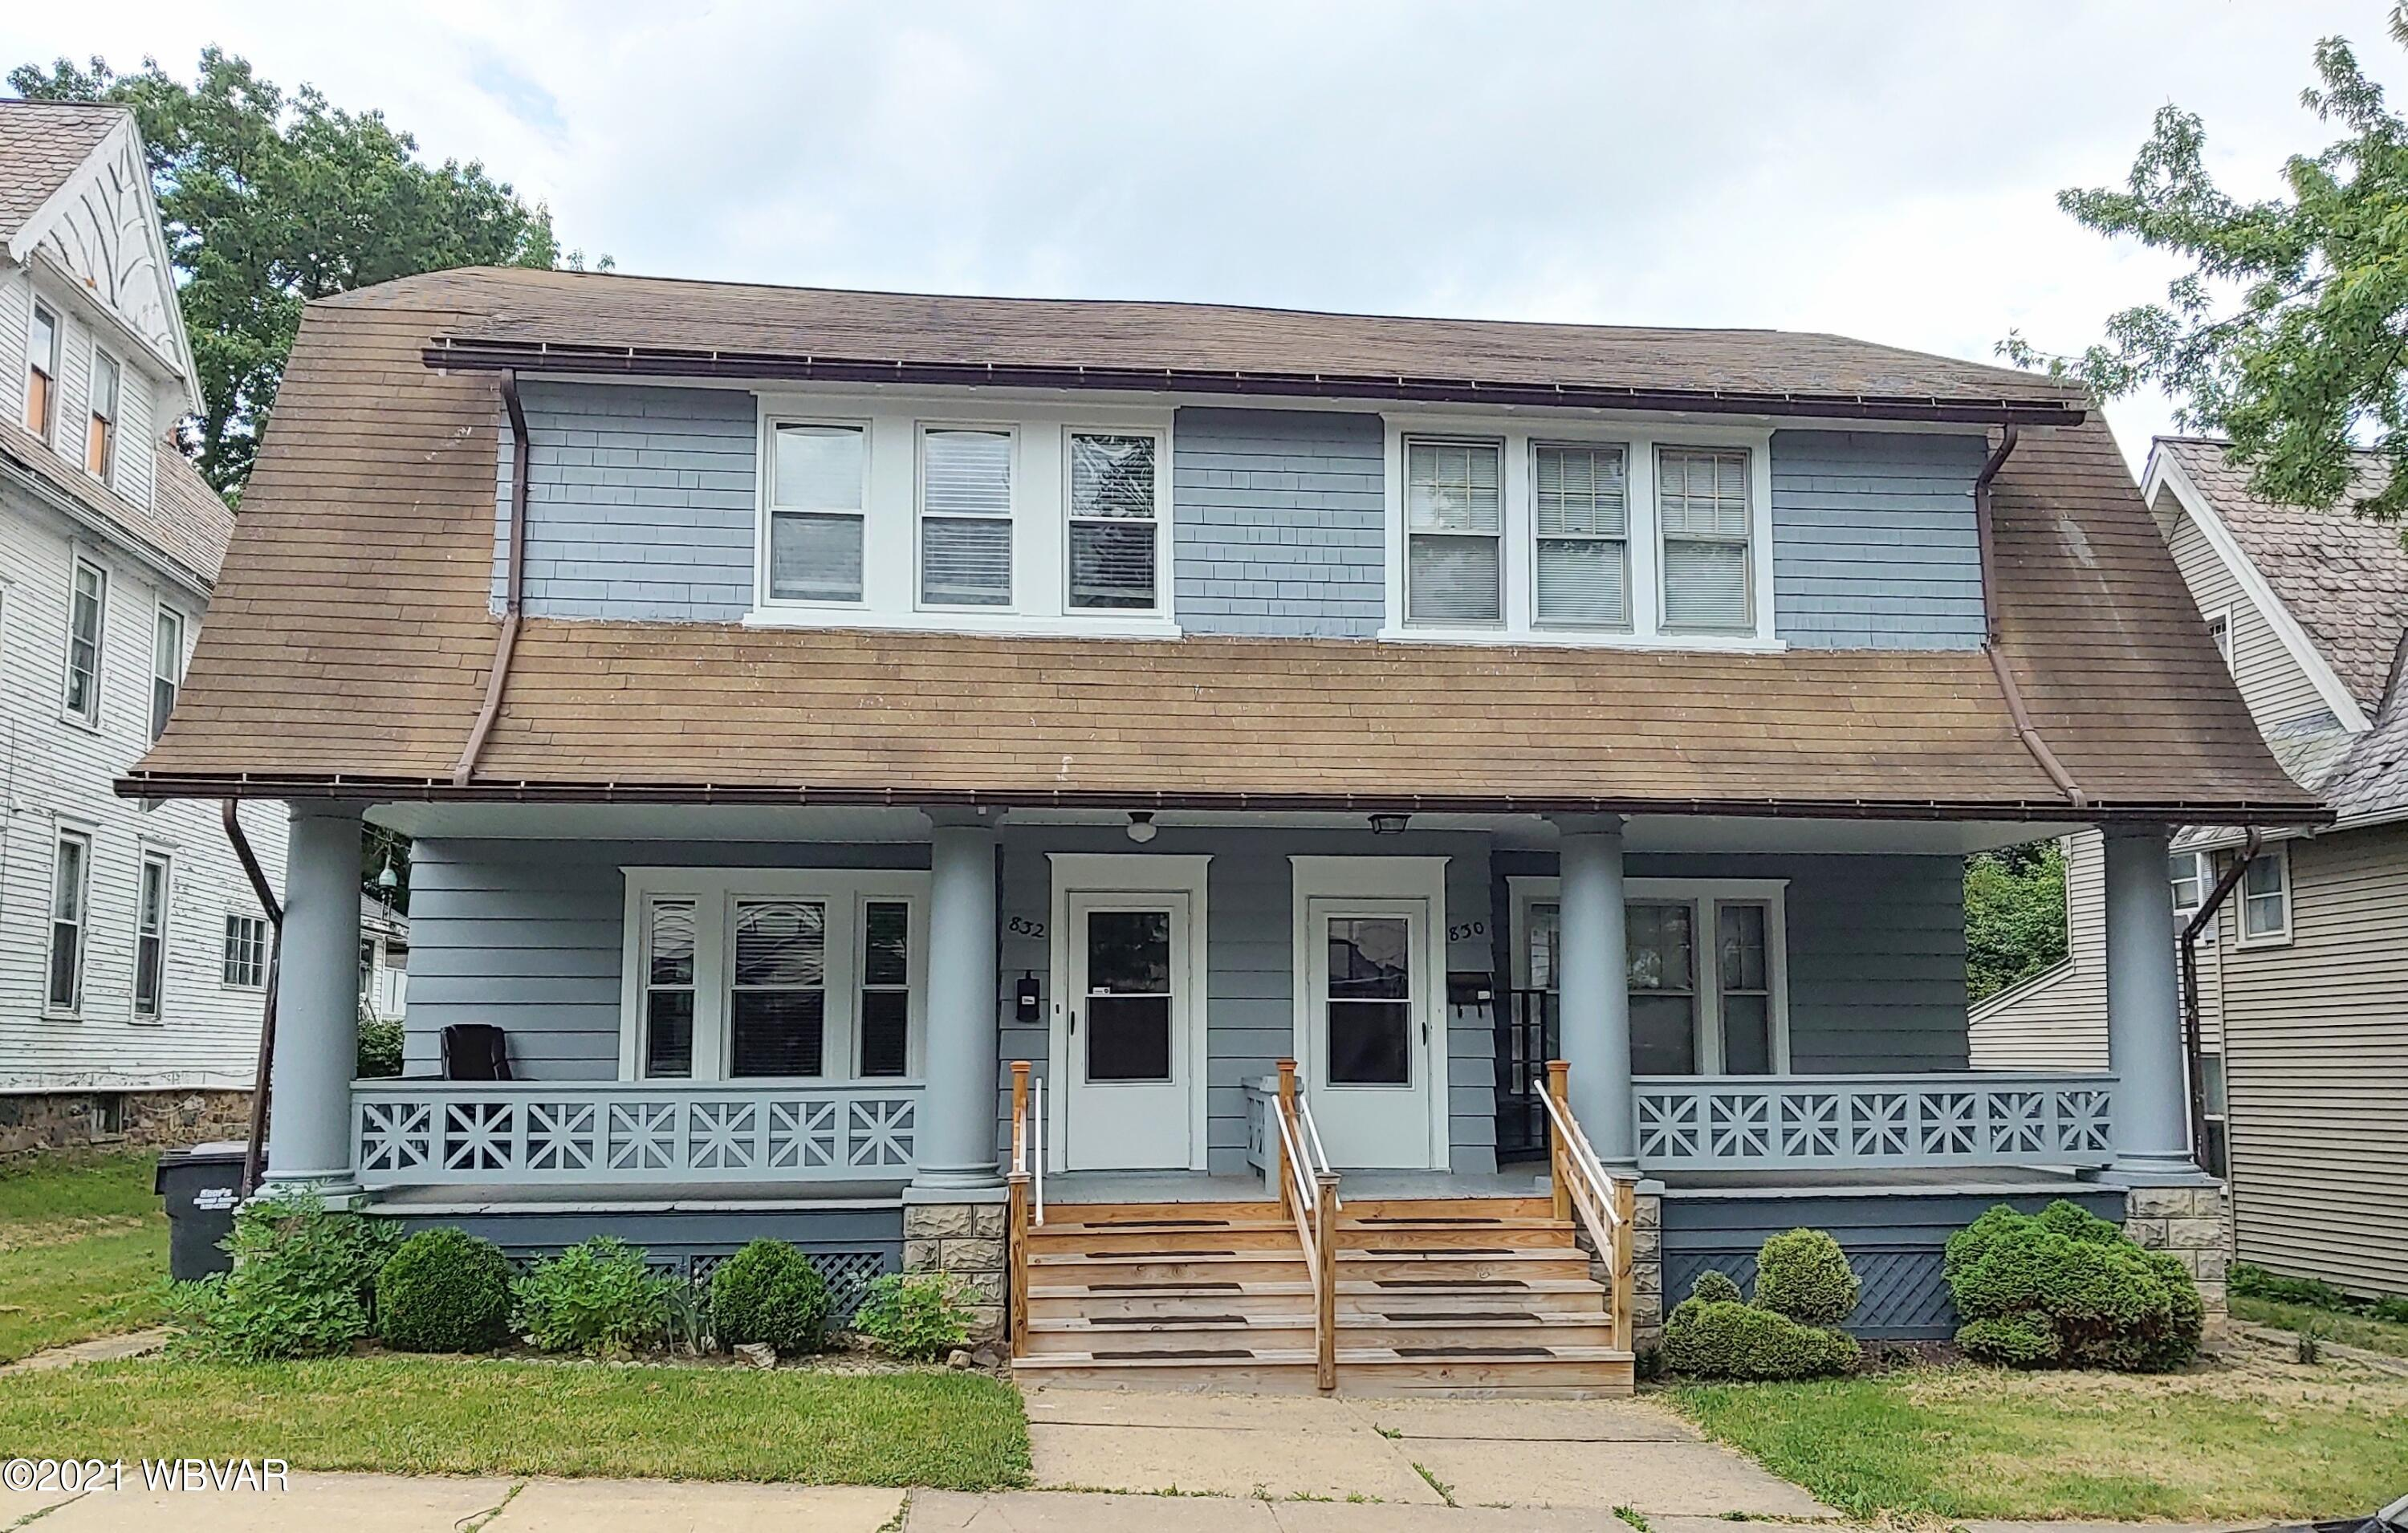 832 THIRD AVENUE, Williamsport, PA 17701, 3 Bedrooms Bedrooms, ,1 BathroomBathrooms,Resid-lease/rental,For sale,THIRD,WB-92770